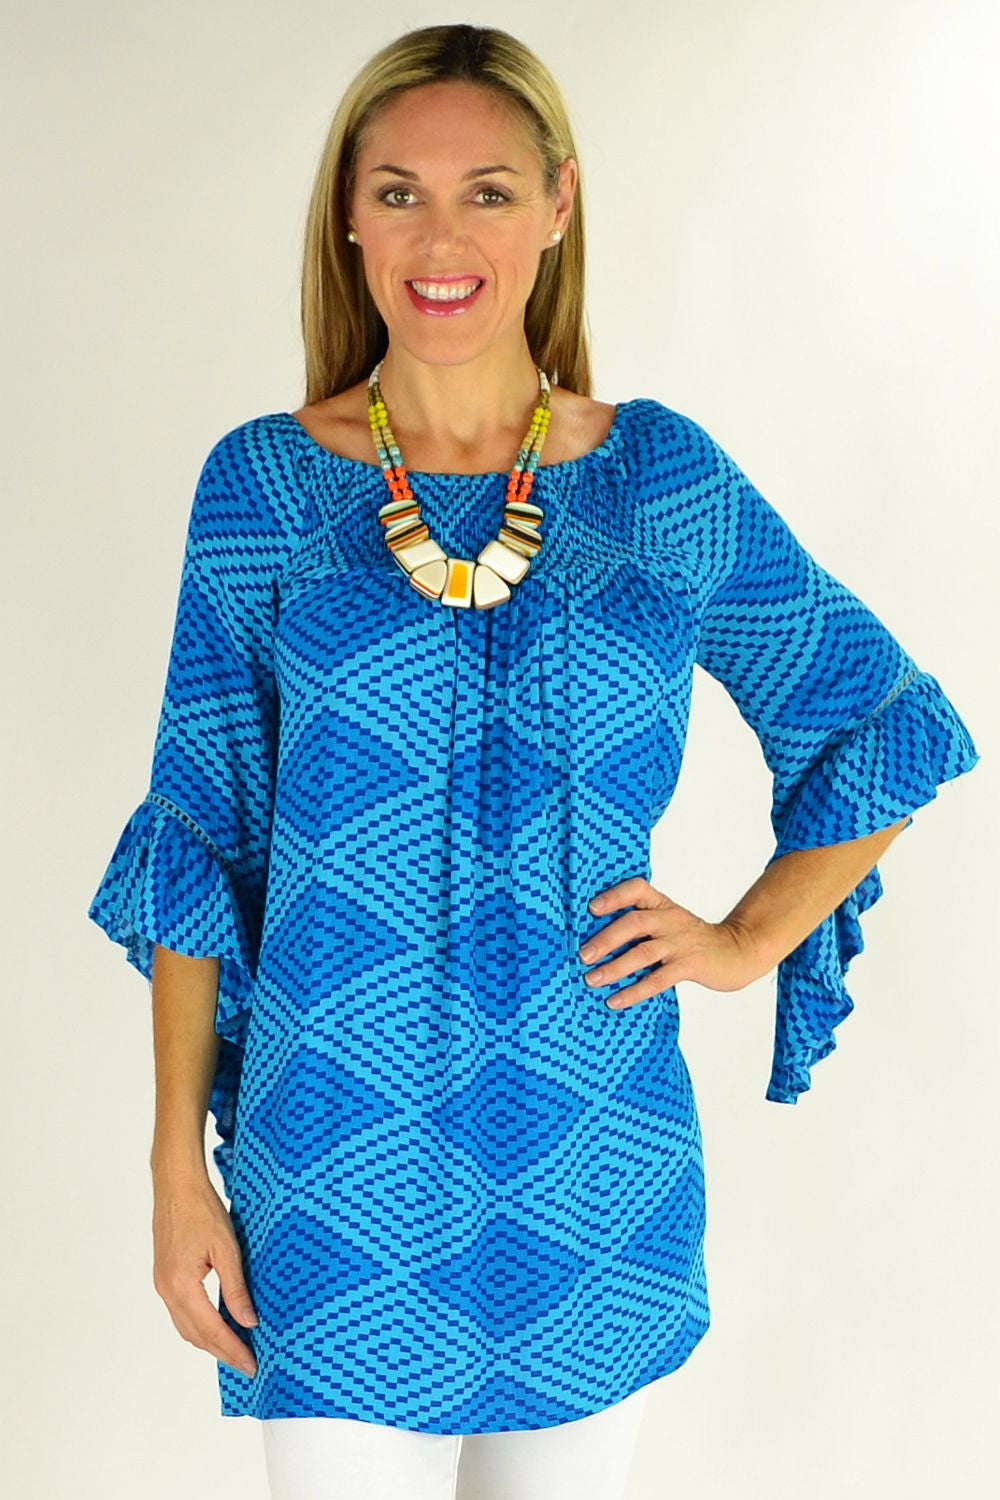 Blue Diamond Tunic | I Love Tunics | Tunic Tops | Tunic Dresses | Women's Tops | Plus Size Australia | Mature Fashion